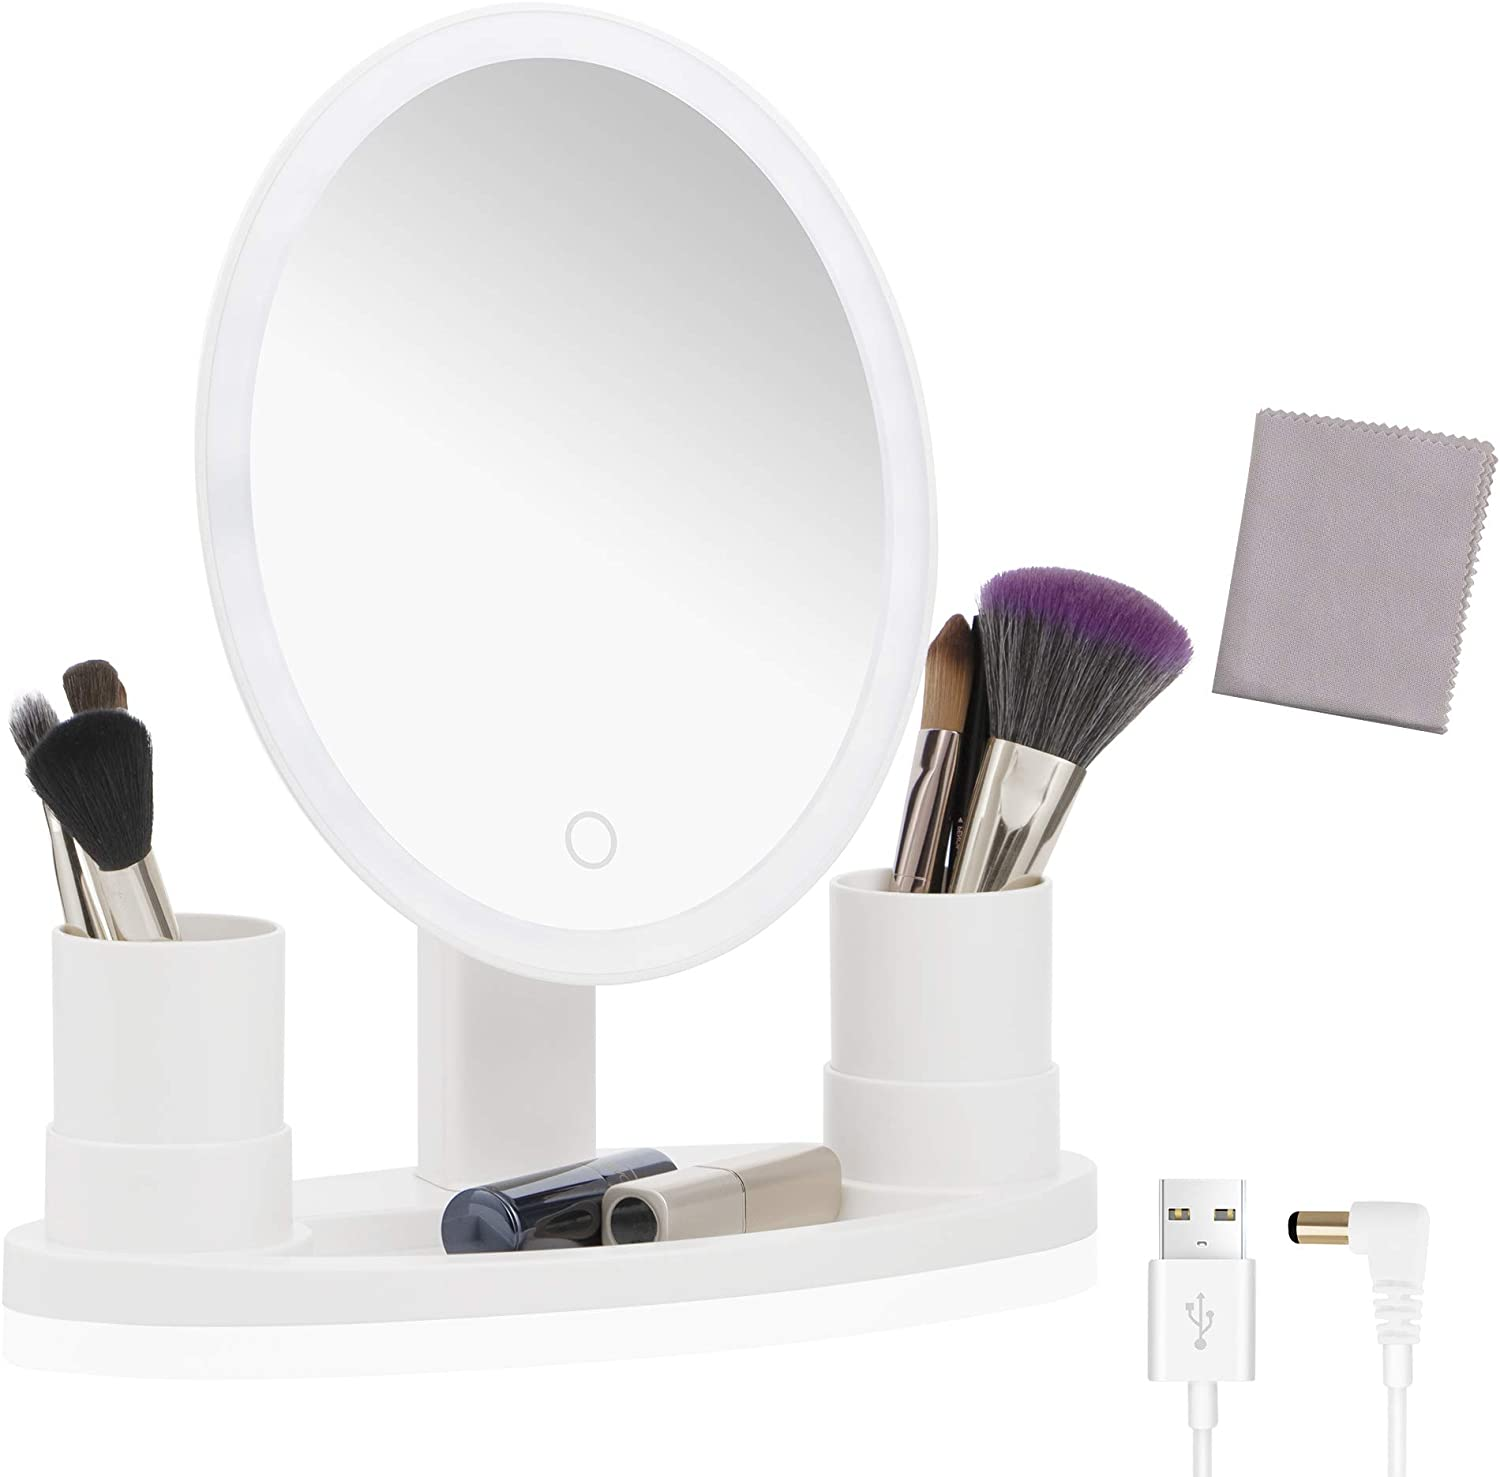 5X Magnification Makeup Mirror with Lights, Lighted MakeupVanity Mirror with CosmeticBrush Organizer, Dual Power Smart Touch DimmableMagnifying Illuminated Mirrors